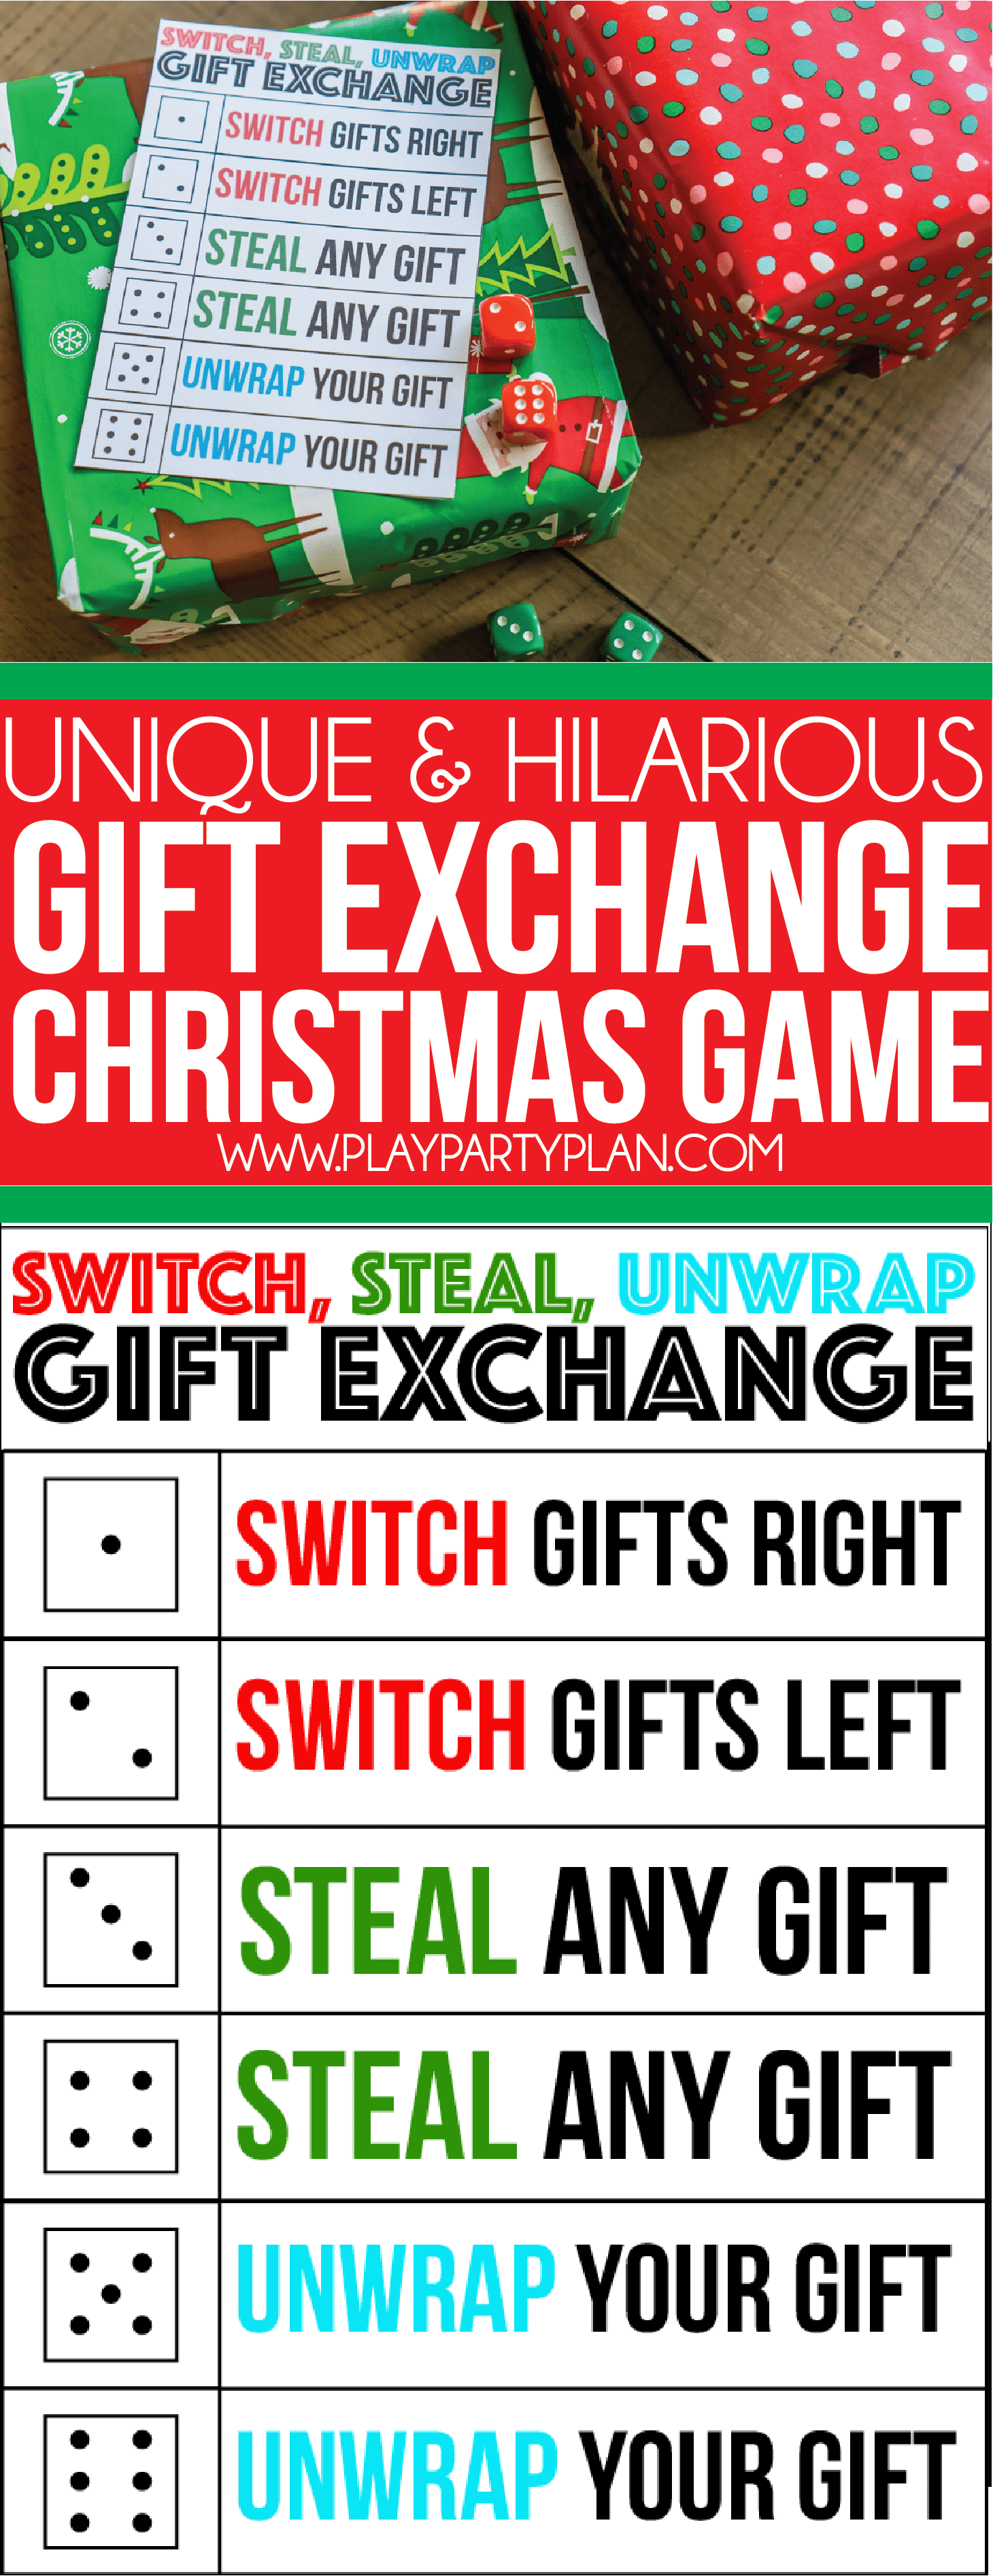 Christmas Gift Exchange Ideas.The Best Gift Exchange Game Ever Switch Steal Or Unwrap